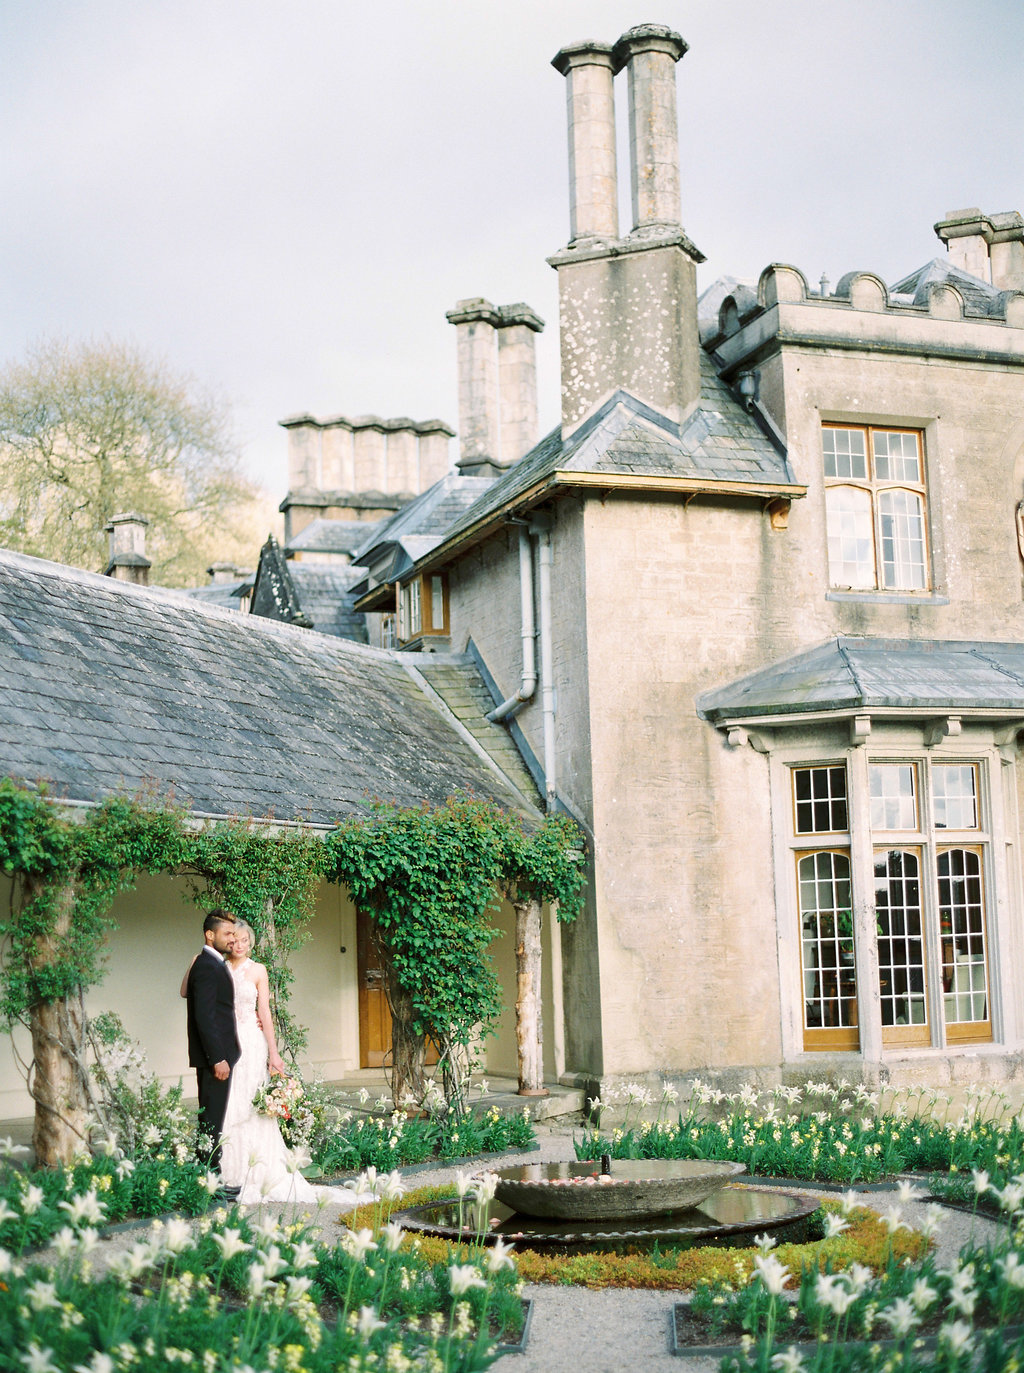 Bridal makeup and hair plus accessories by victoria fergusson at Hotel Endsleigh (103).jpg